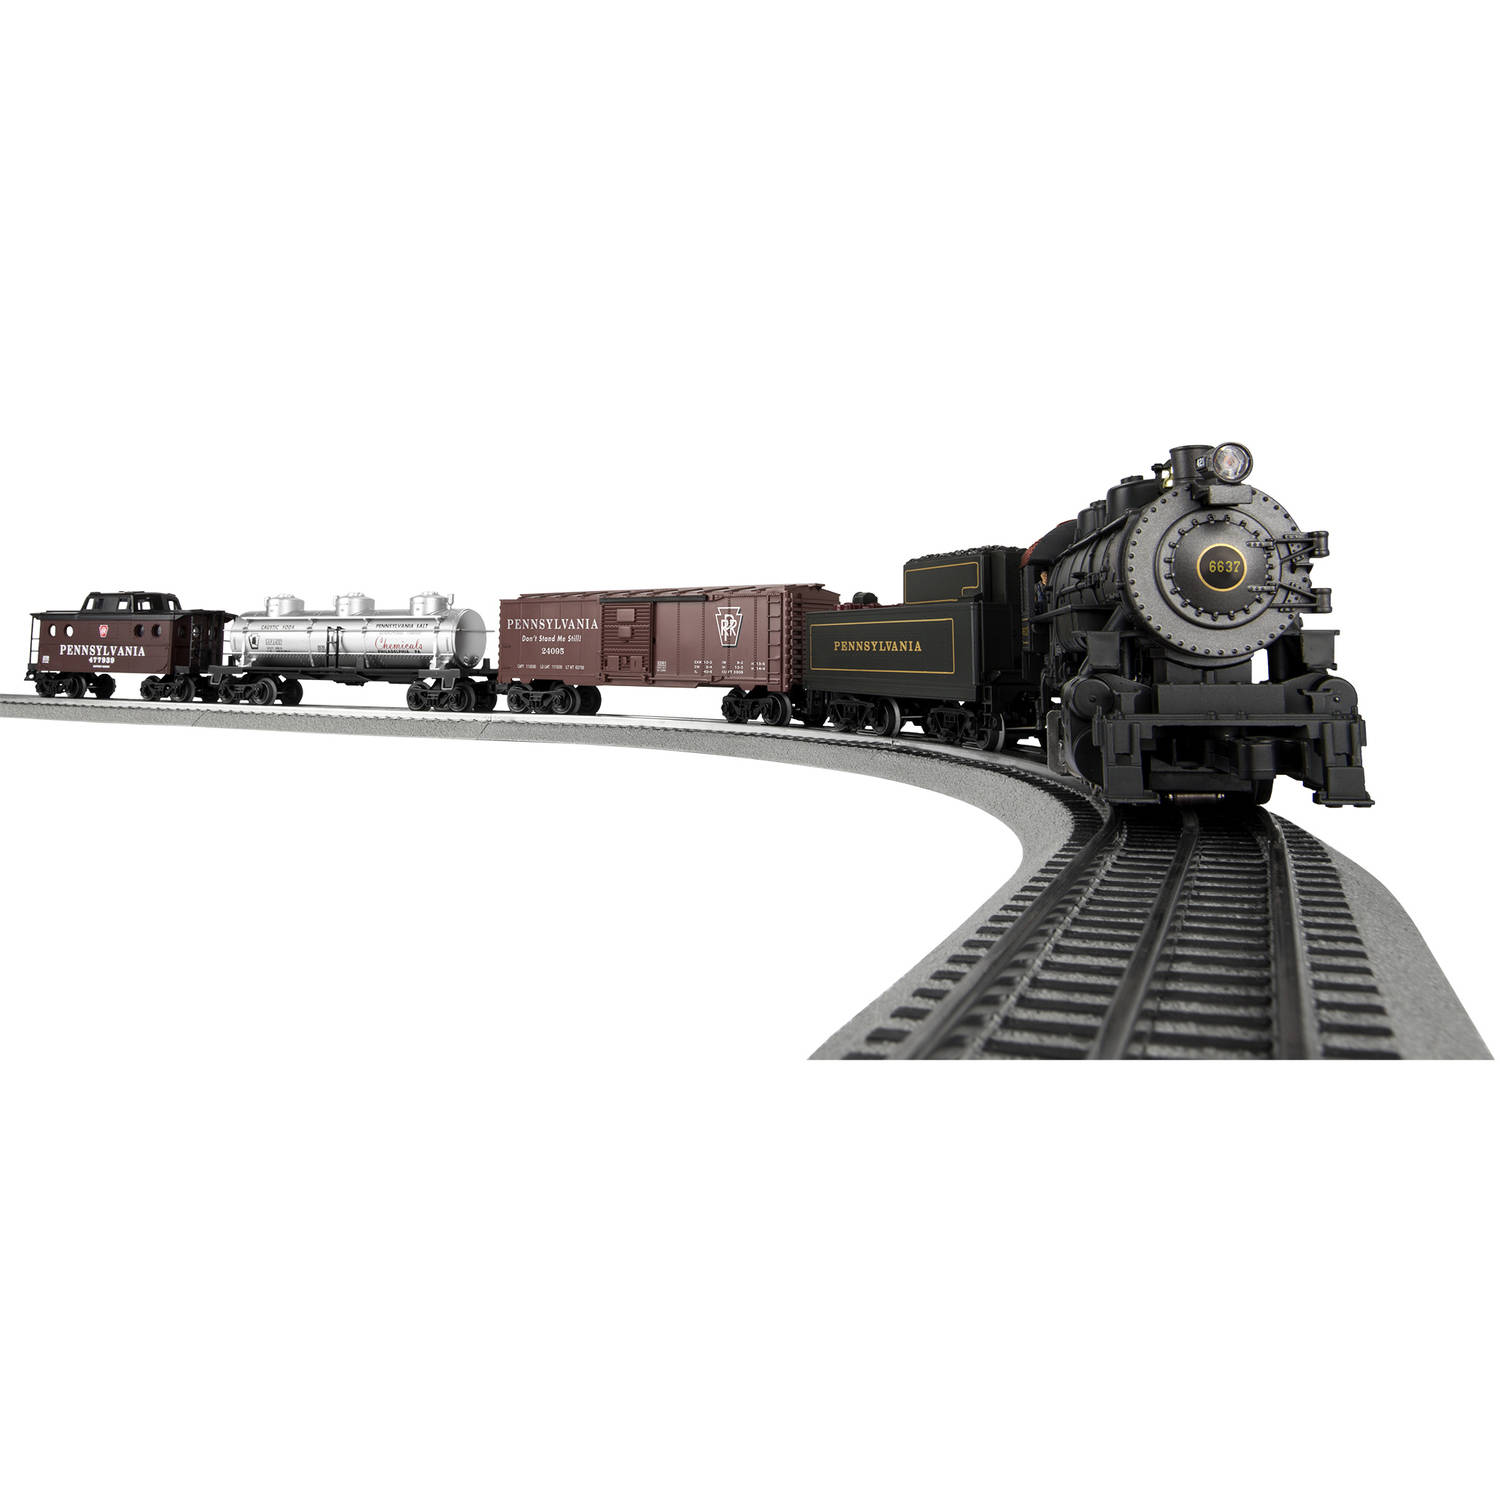 Lionel Trains PennSylvania Flyer LionChief 0-8-0 Freight Remote Control Set with BlueTooth... by Lionel Trains